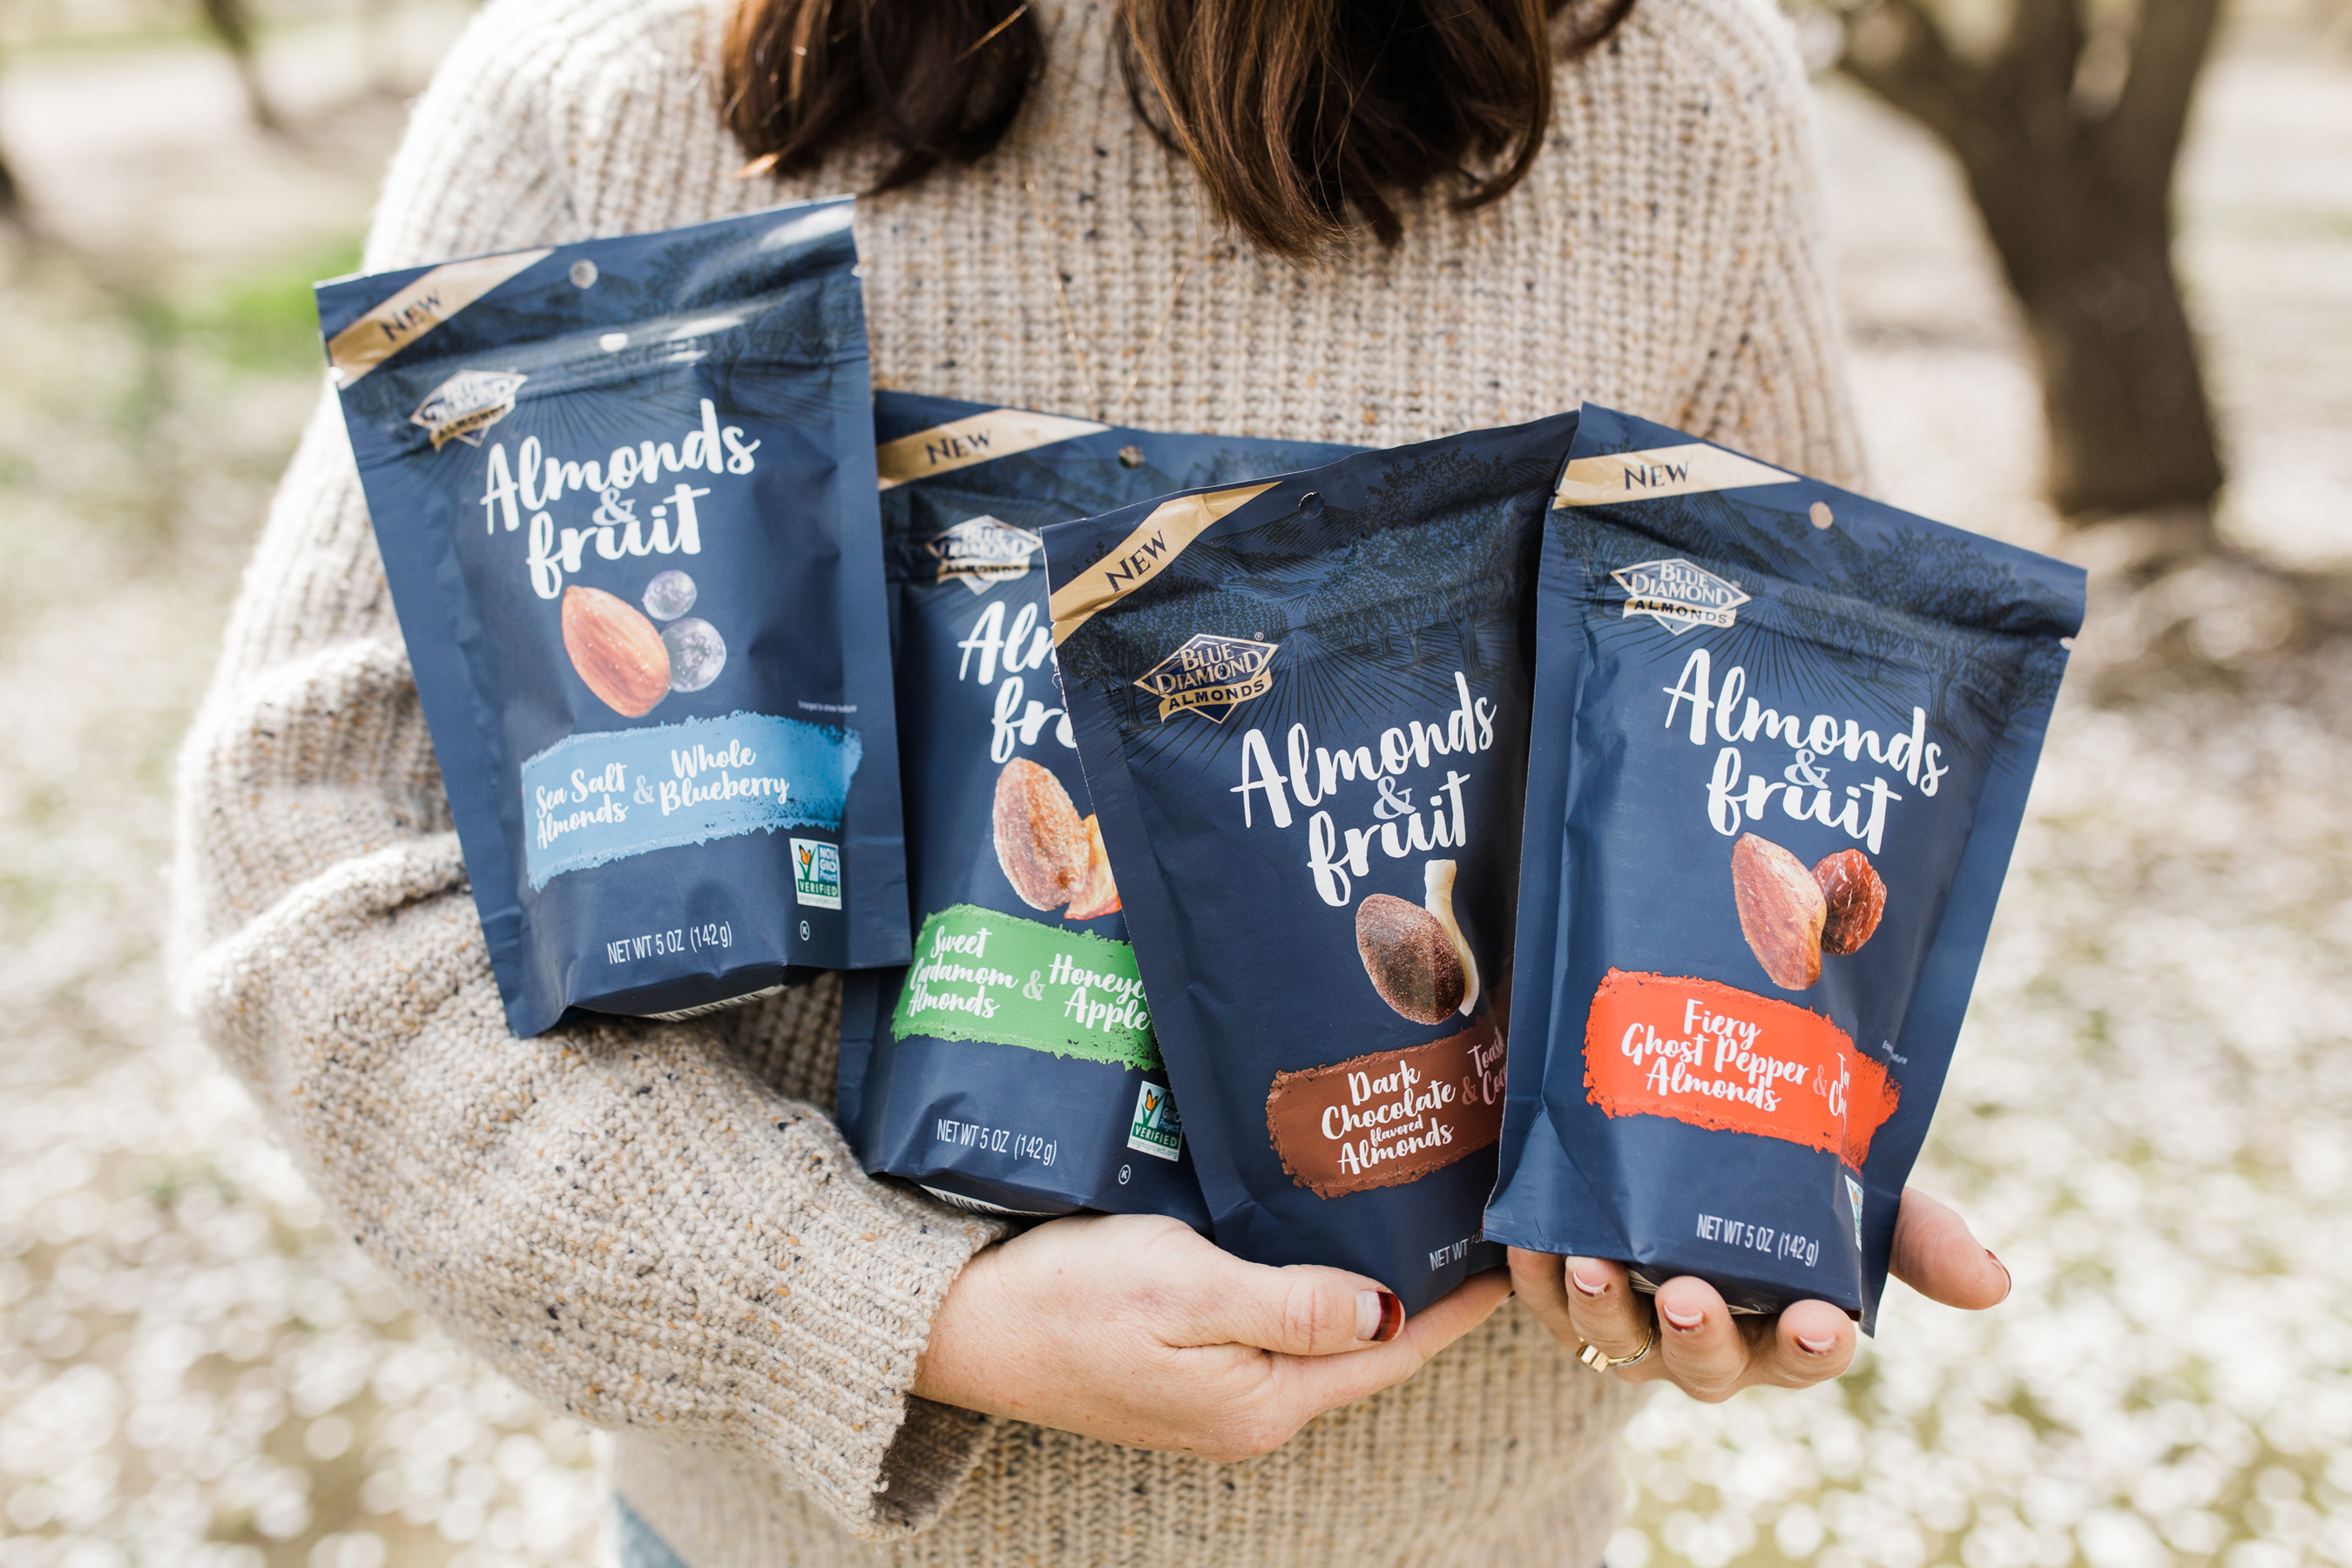 Almonds & Fruit follows closely on the launch of the brand's Crafted line. With Blue Diamond's line of gourmet snacks in hand, customers can effortlessly elevate snack time day in and day out.